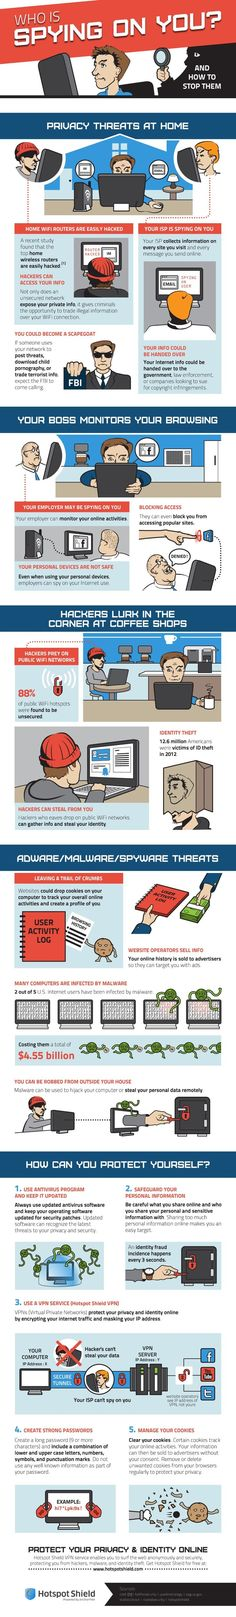 Your Internet service provider collects information about the sites you visit. Your employer could be monitoring your online activity. Hackers can steal your information when you're connected to a public Wi-Fi hotspot. If you honestly didn't know those facts, you will benefit from reading through this infograph, understanding when you're most vulnerable to snooping, and…